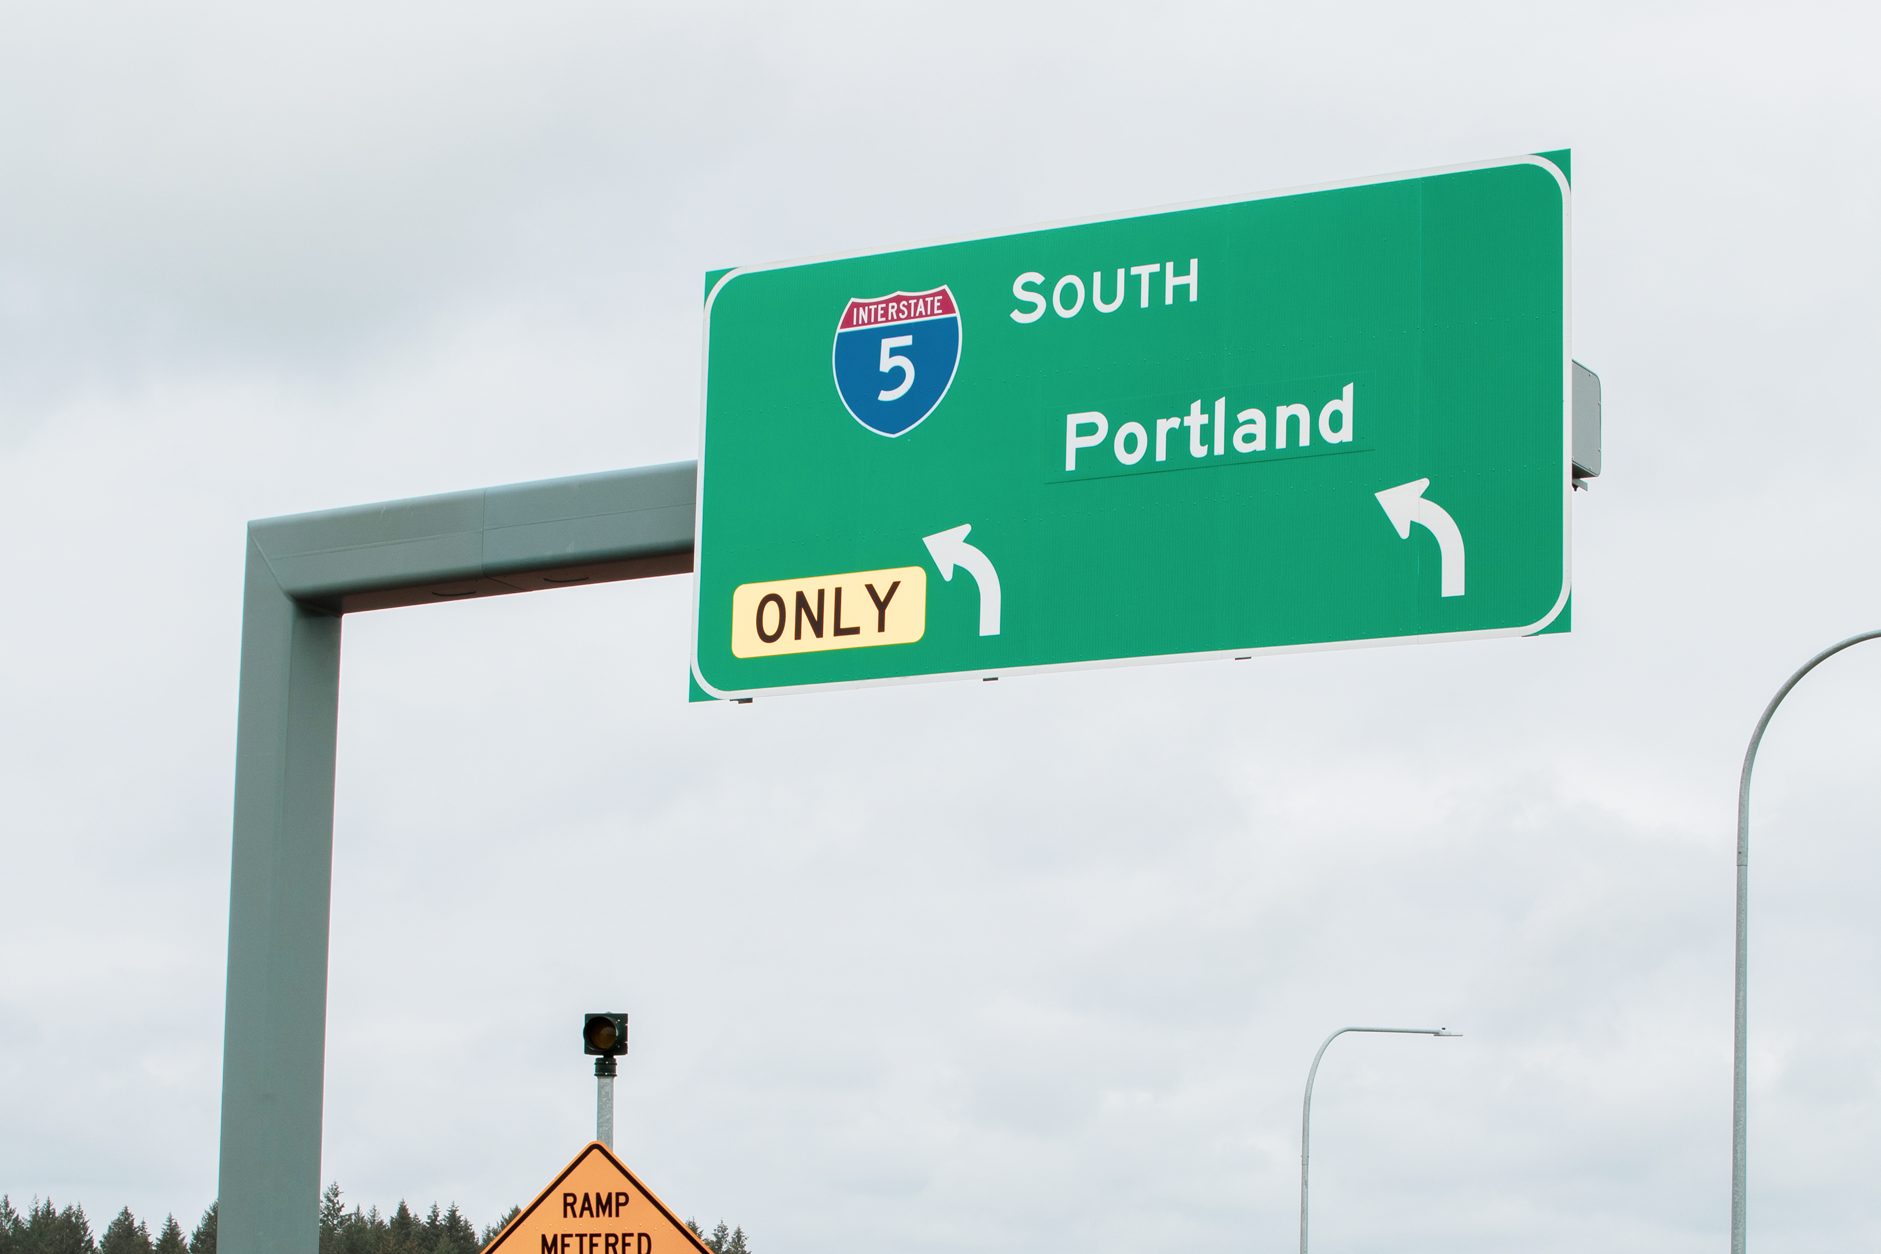 Northeast is ready to crane overhead highway signs into place and provide proper night time lighting. Get expert experience for design, installation and lighting for your next highway project.